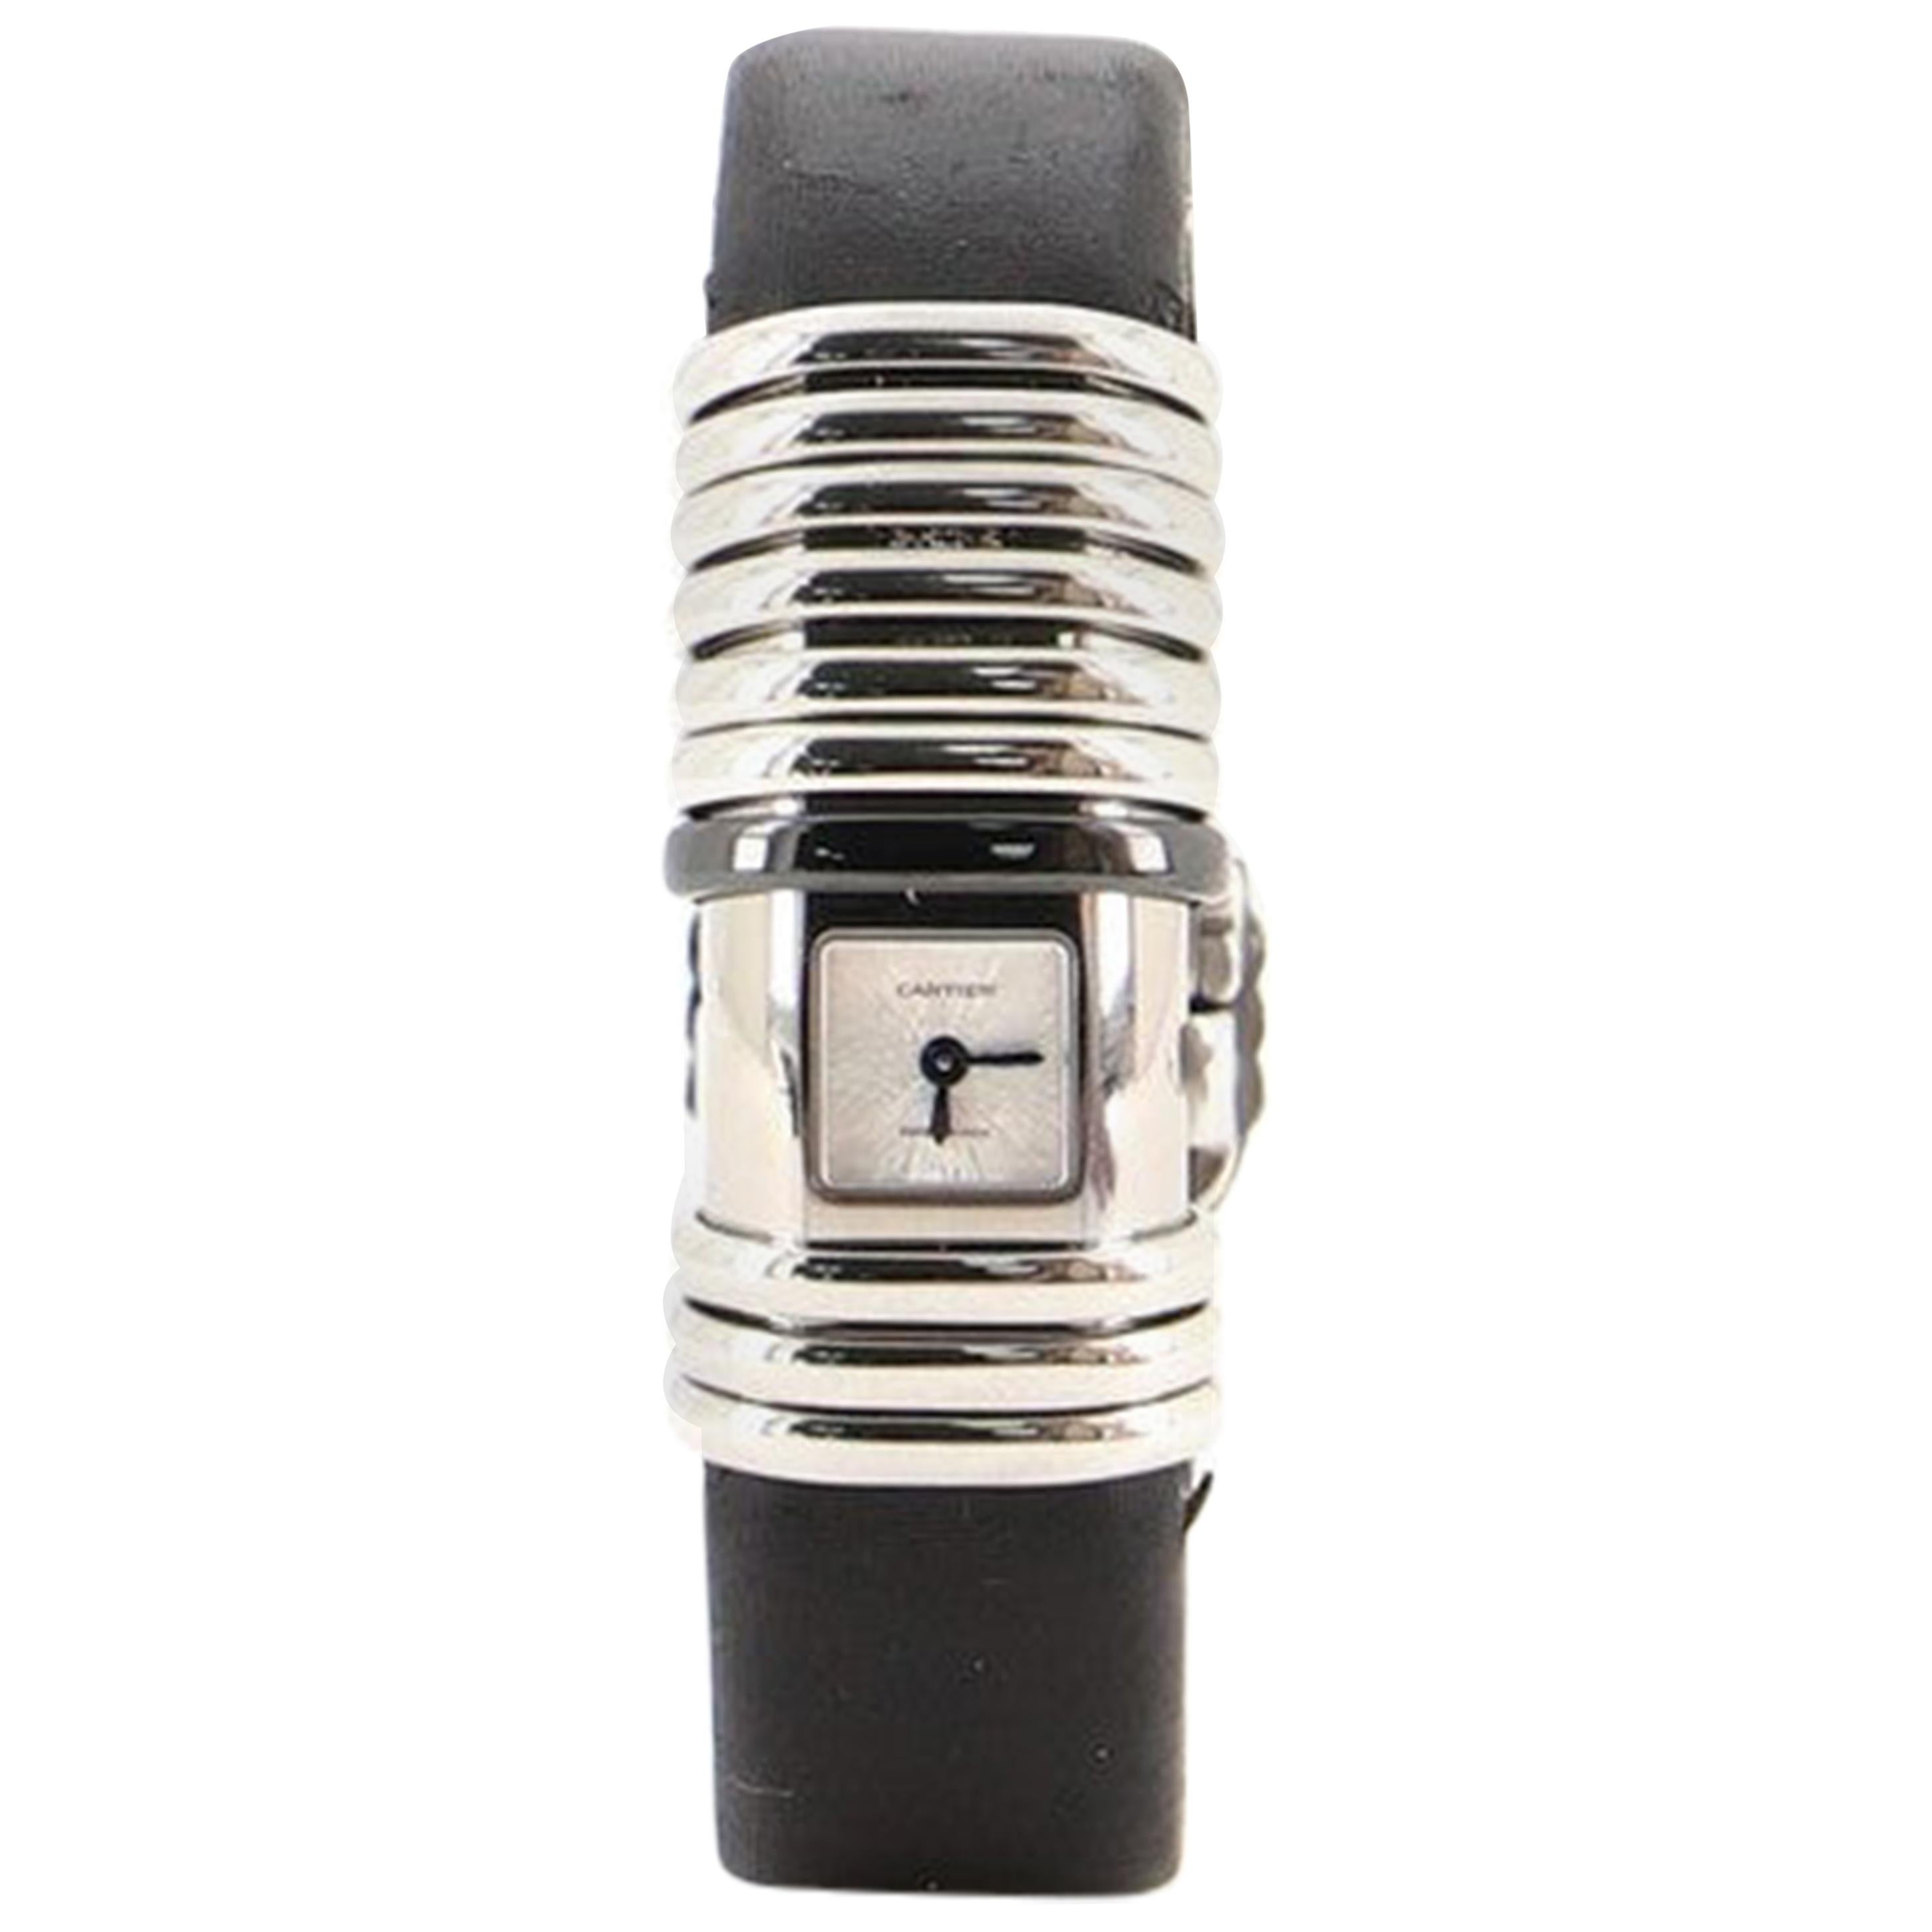 Cartier Declaration Quartz Watch Stainless Steel and Satin Leather with Diamonds